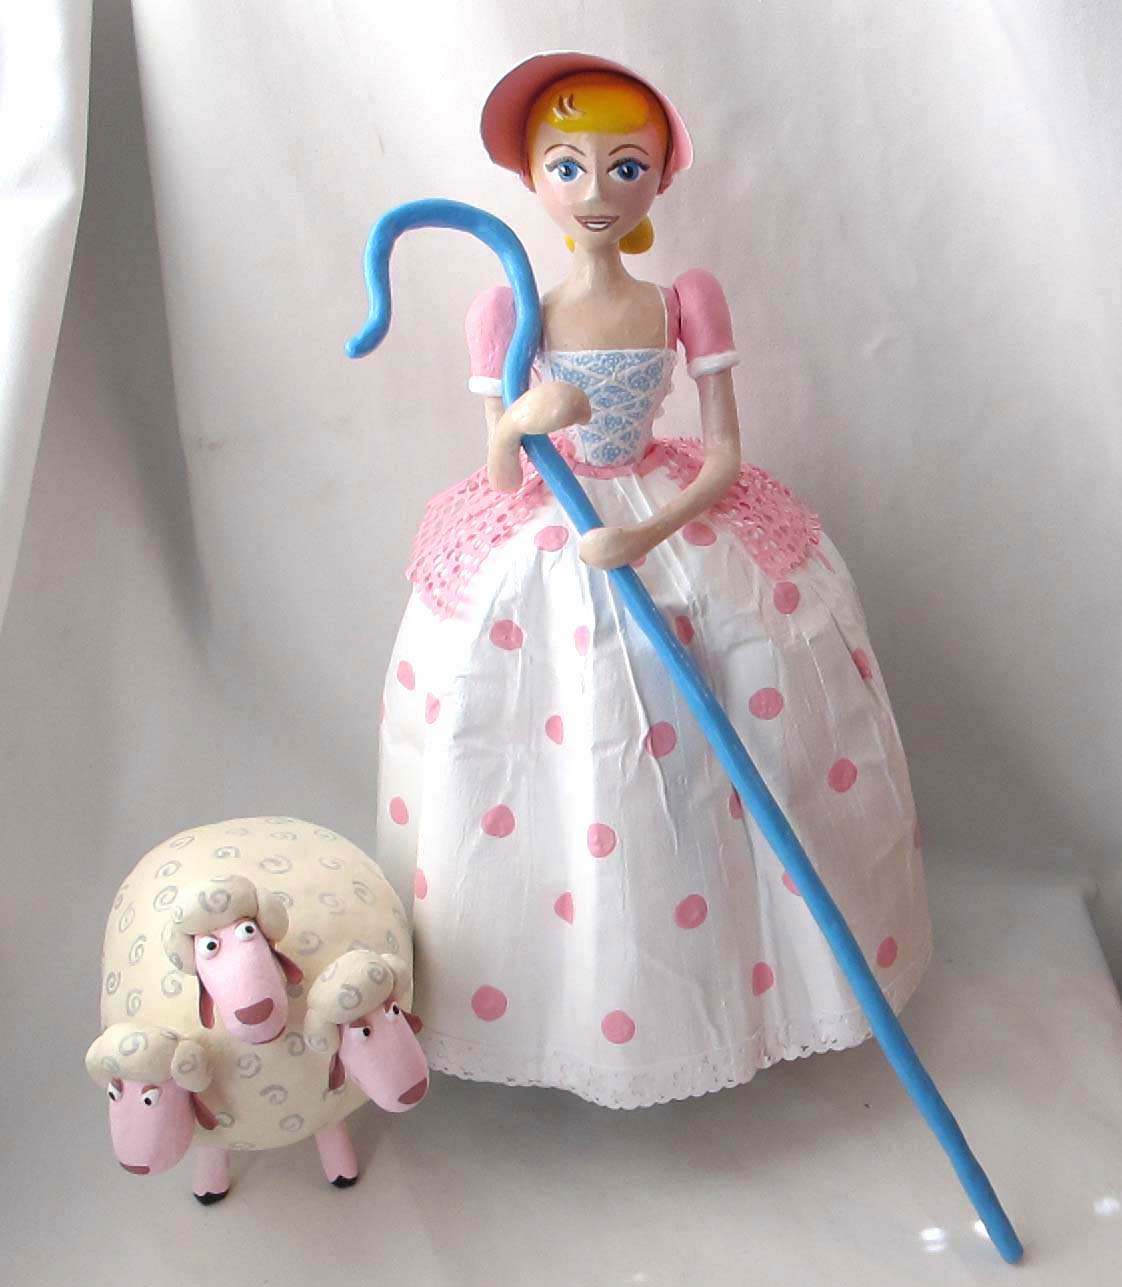 Toy story bo peep consider, that